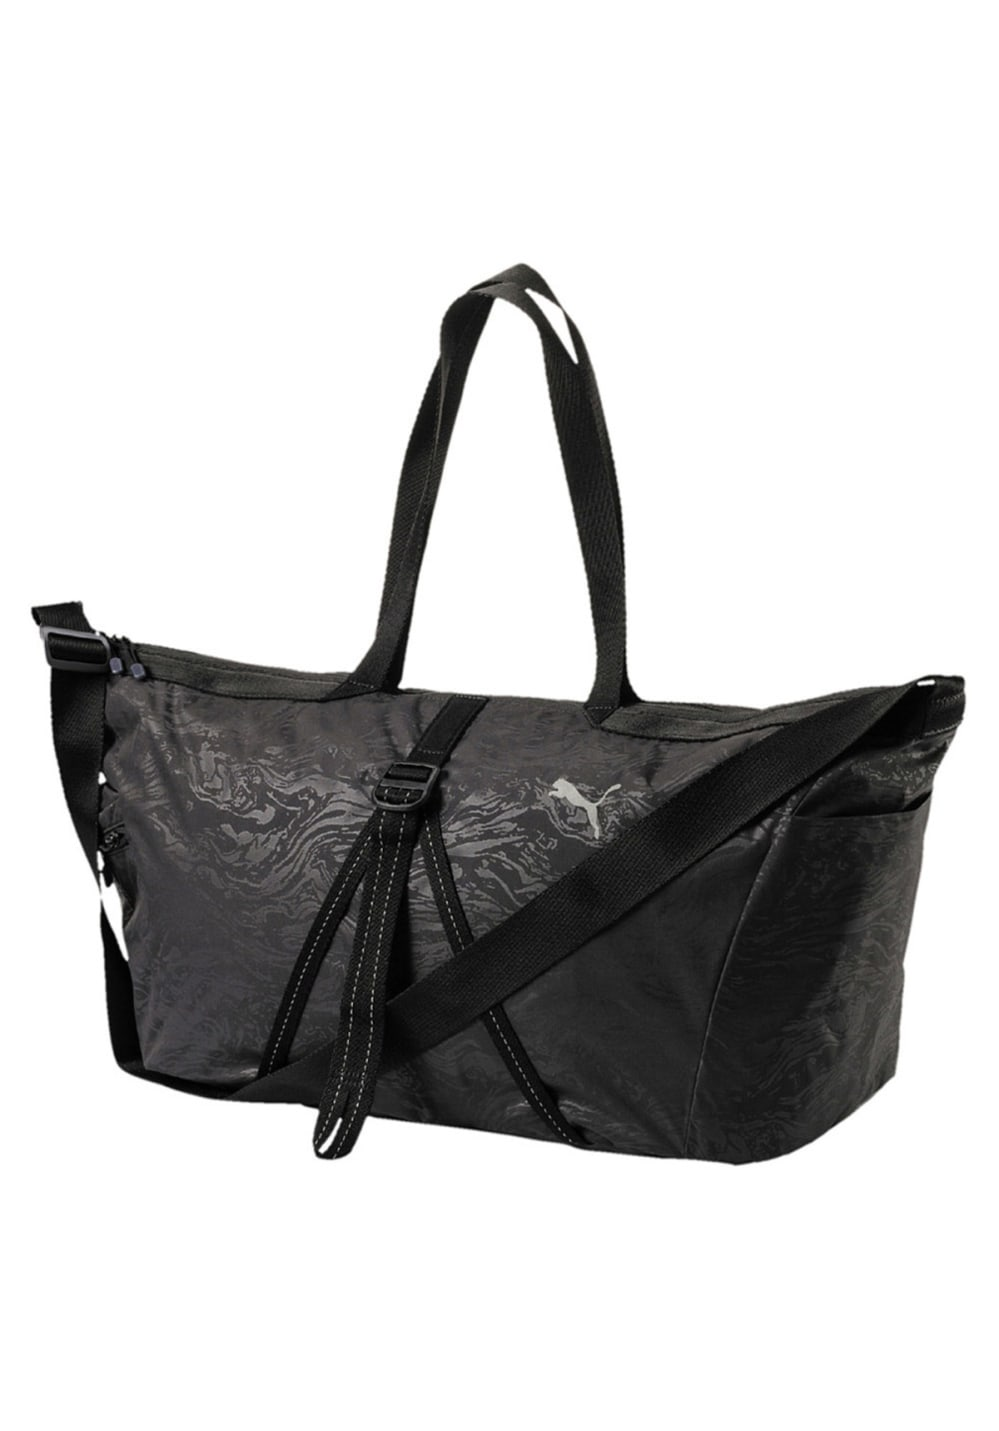 ffbc8f6f26 ... Puma Fit AT Workout Bag - Sports bags for Women - Black. Back to  Overview. -50%